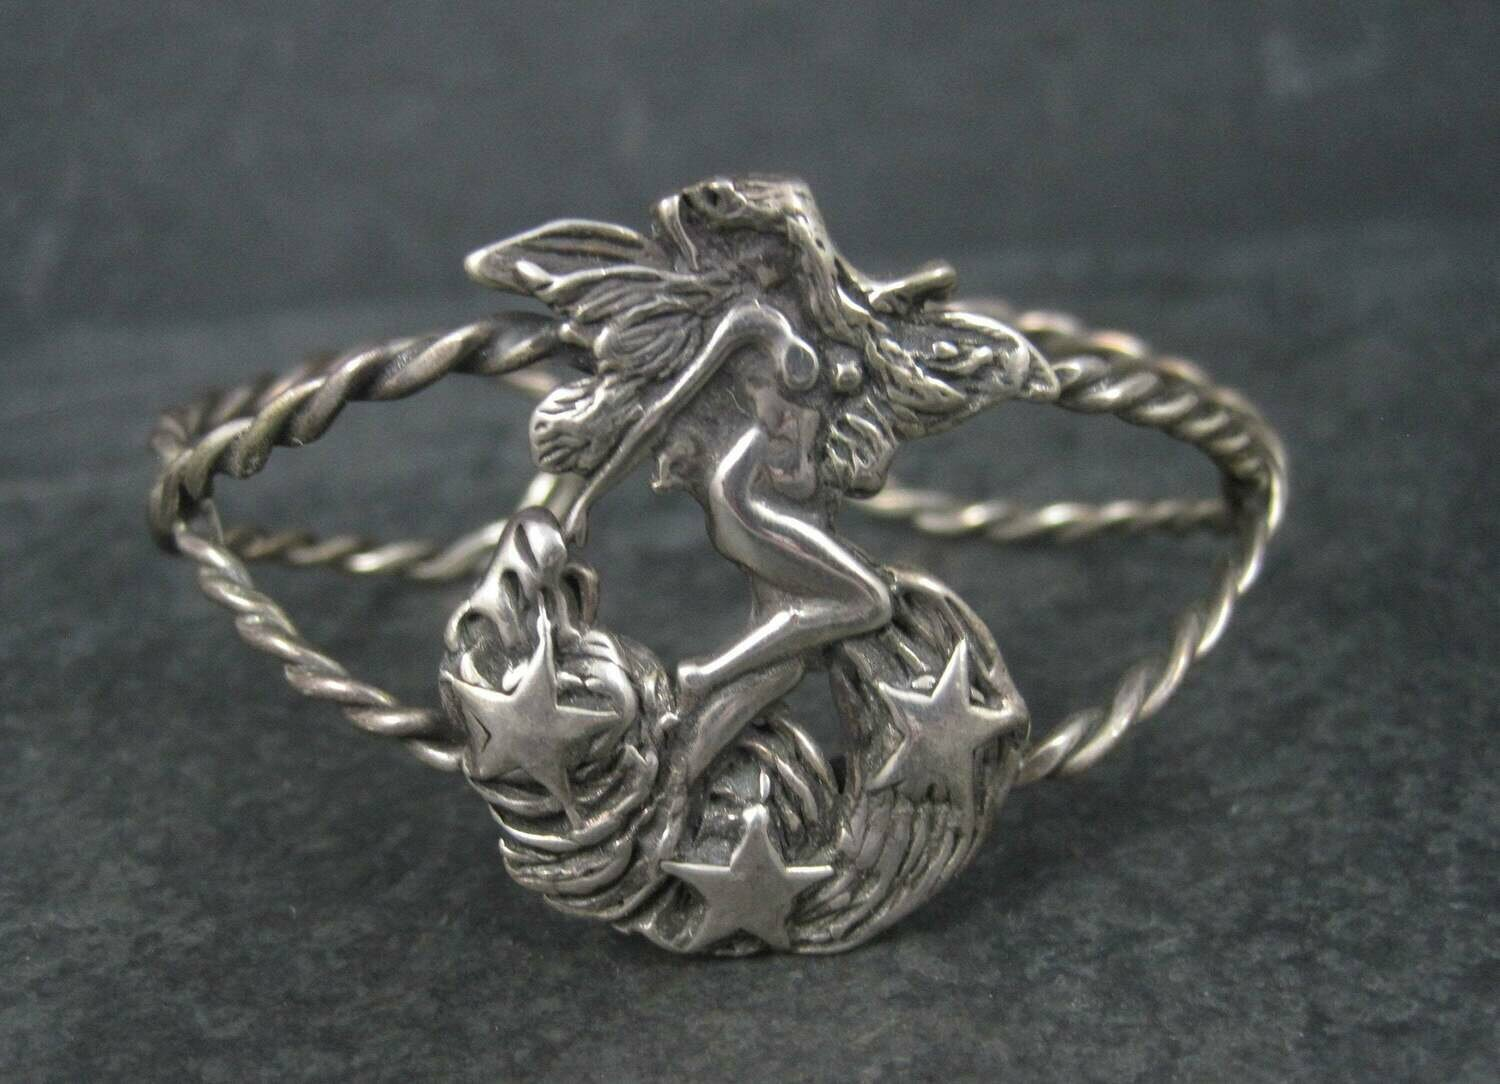 Vintage Sterling Nude Fairy Goddess Cuff Bracelet 6.25 Inches